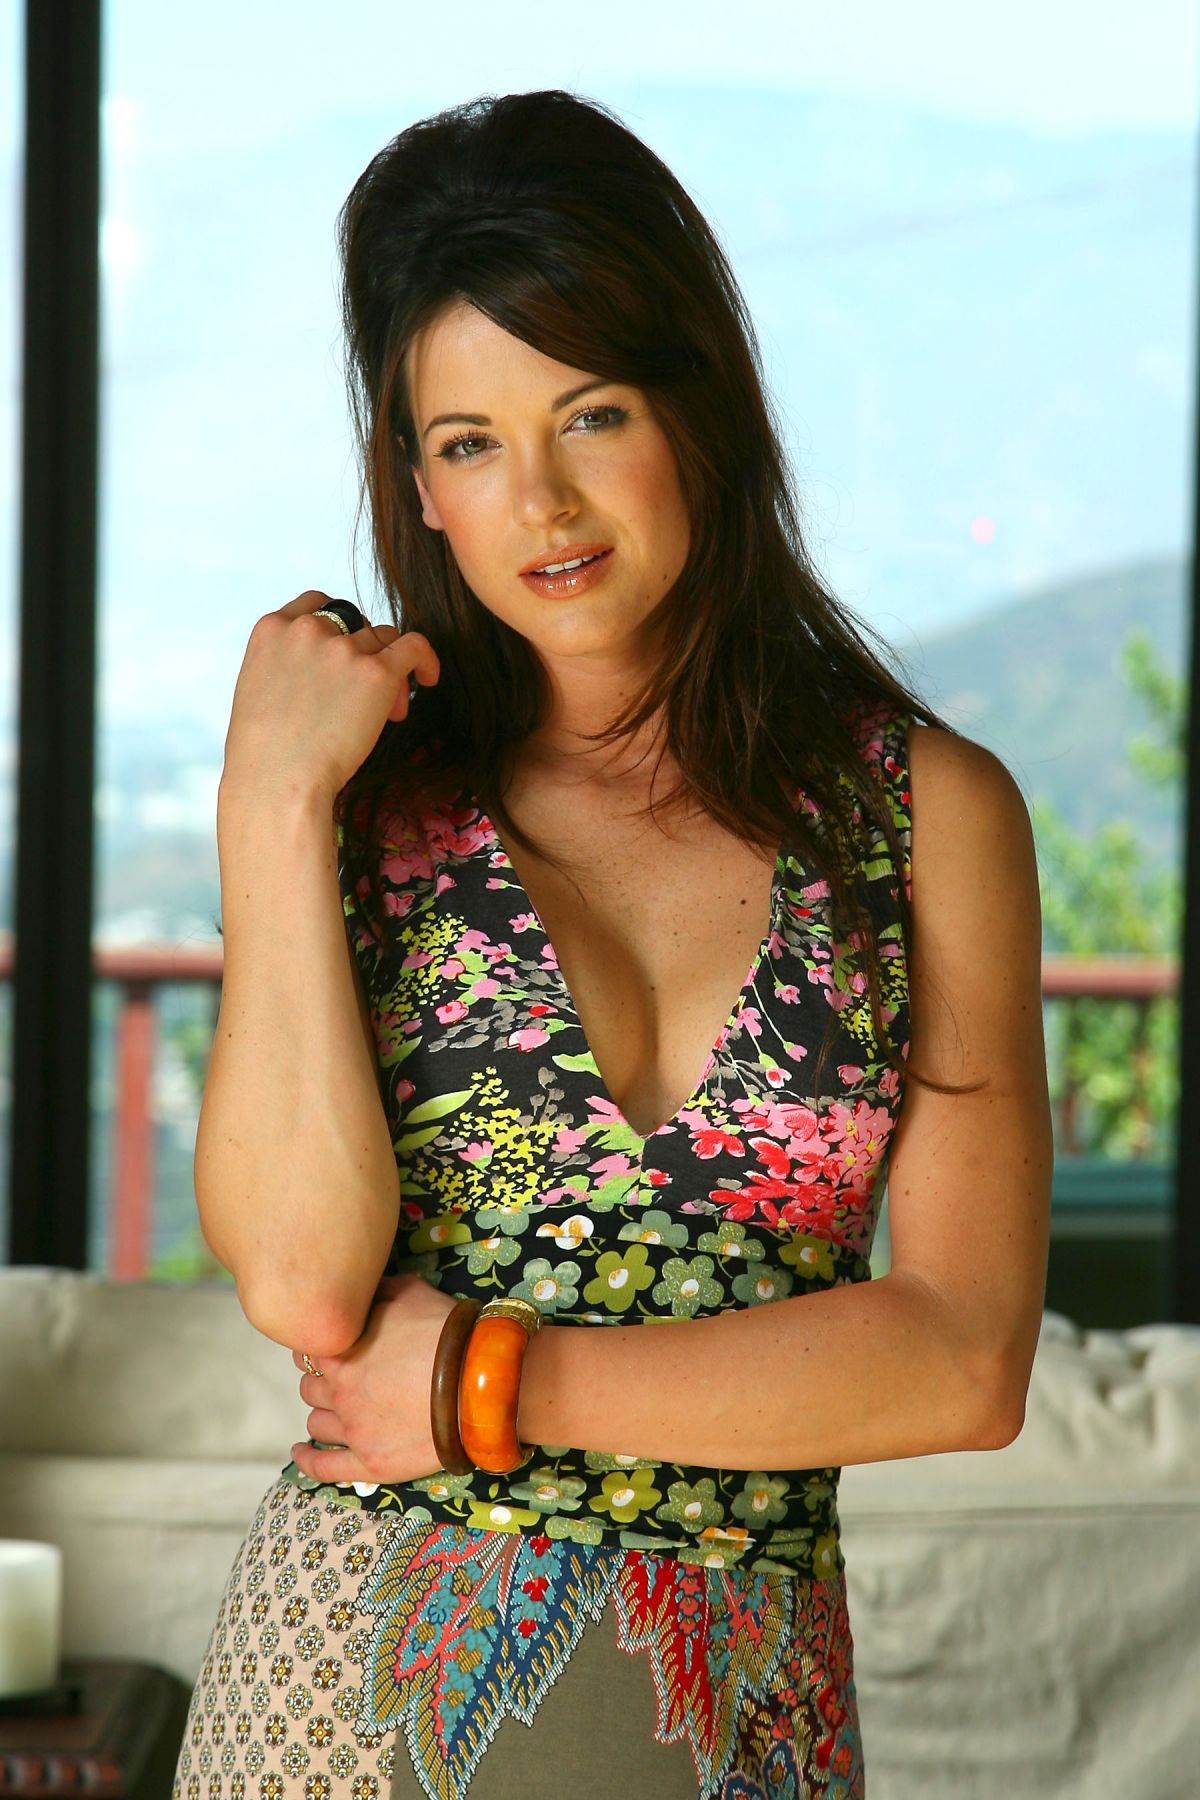 Danneel Ackles Harris At 2006 InTouch Magazine Photoshoot